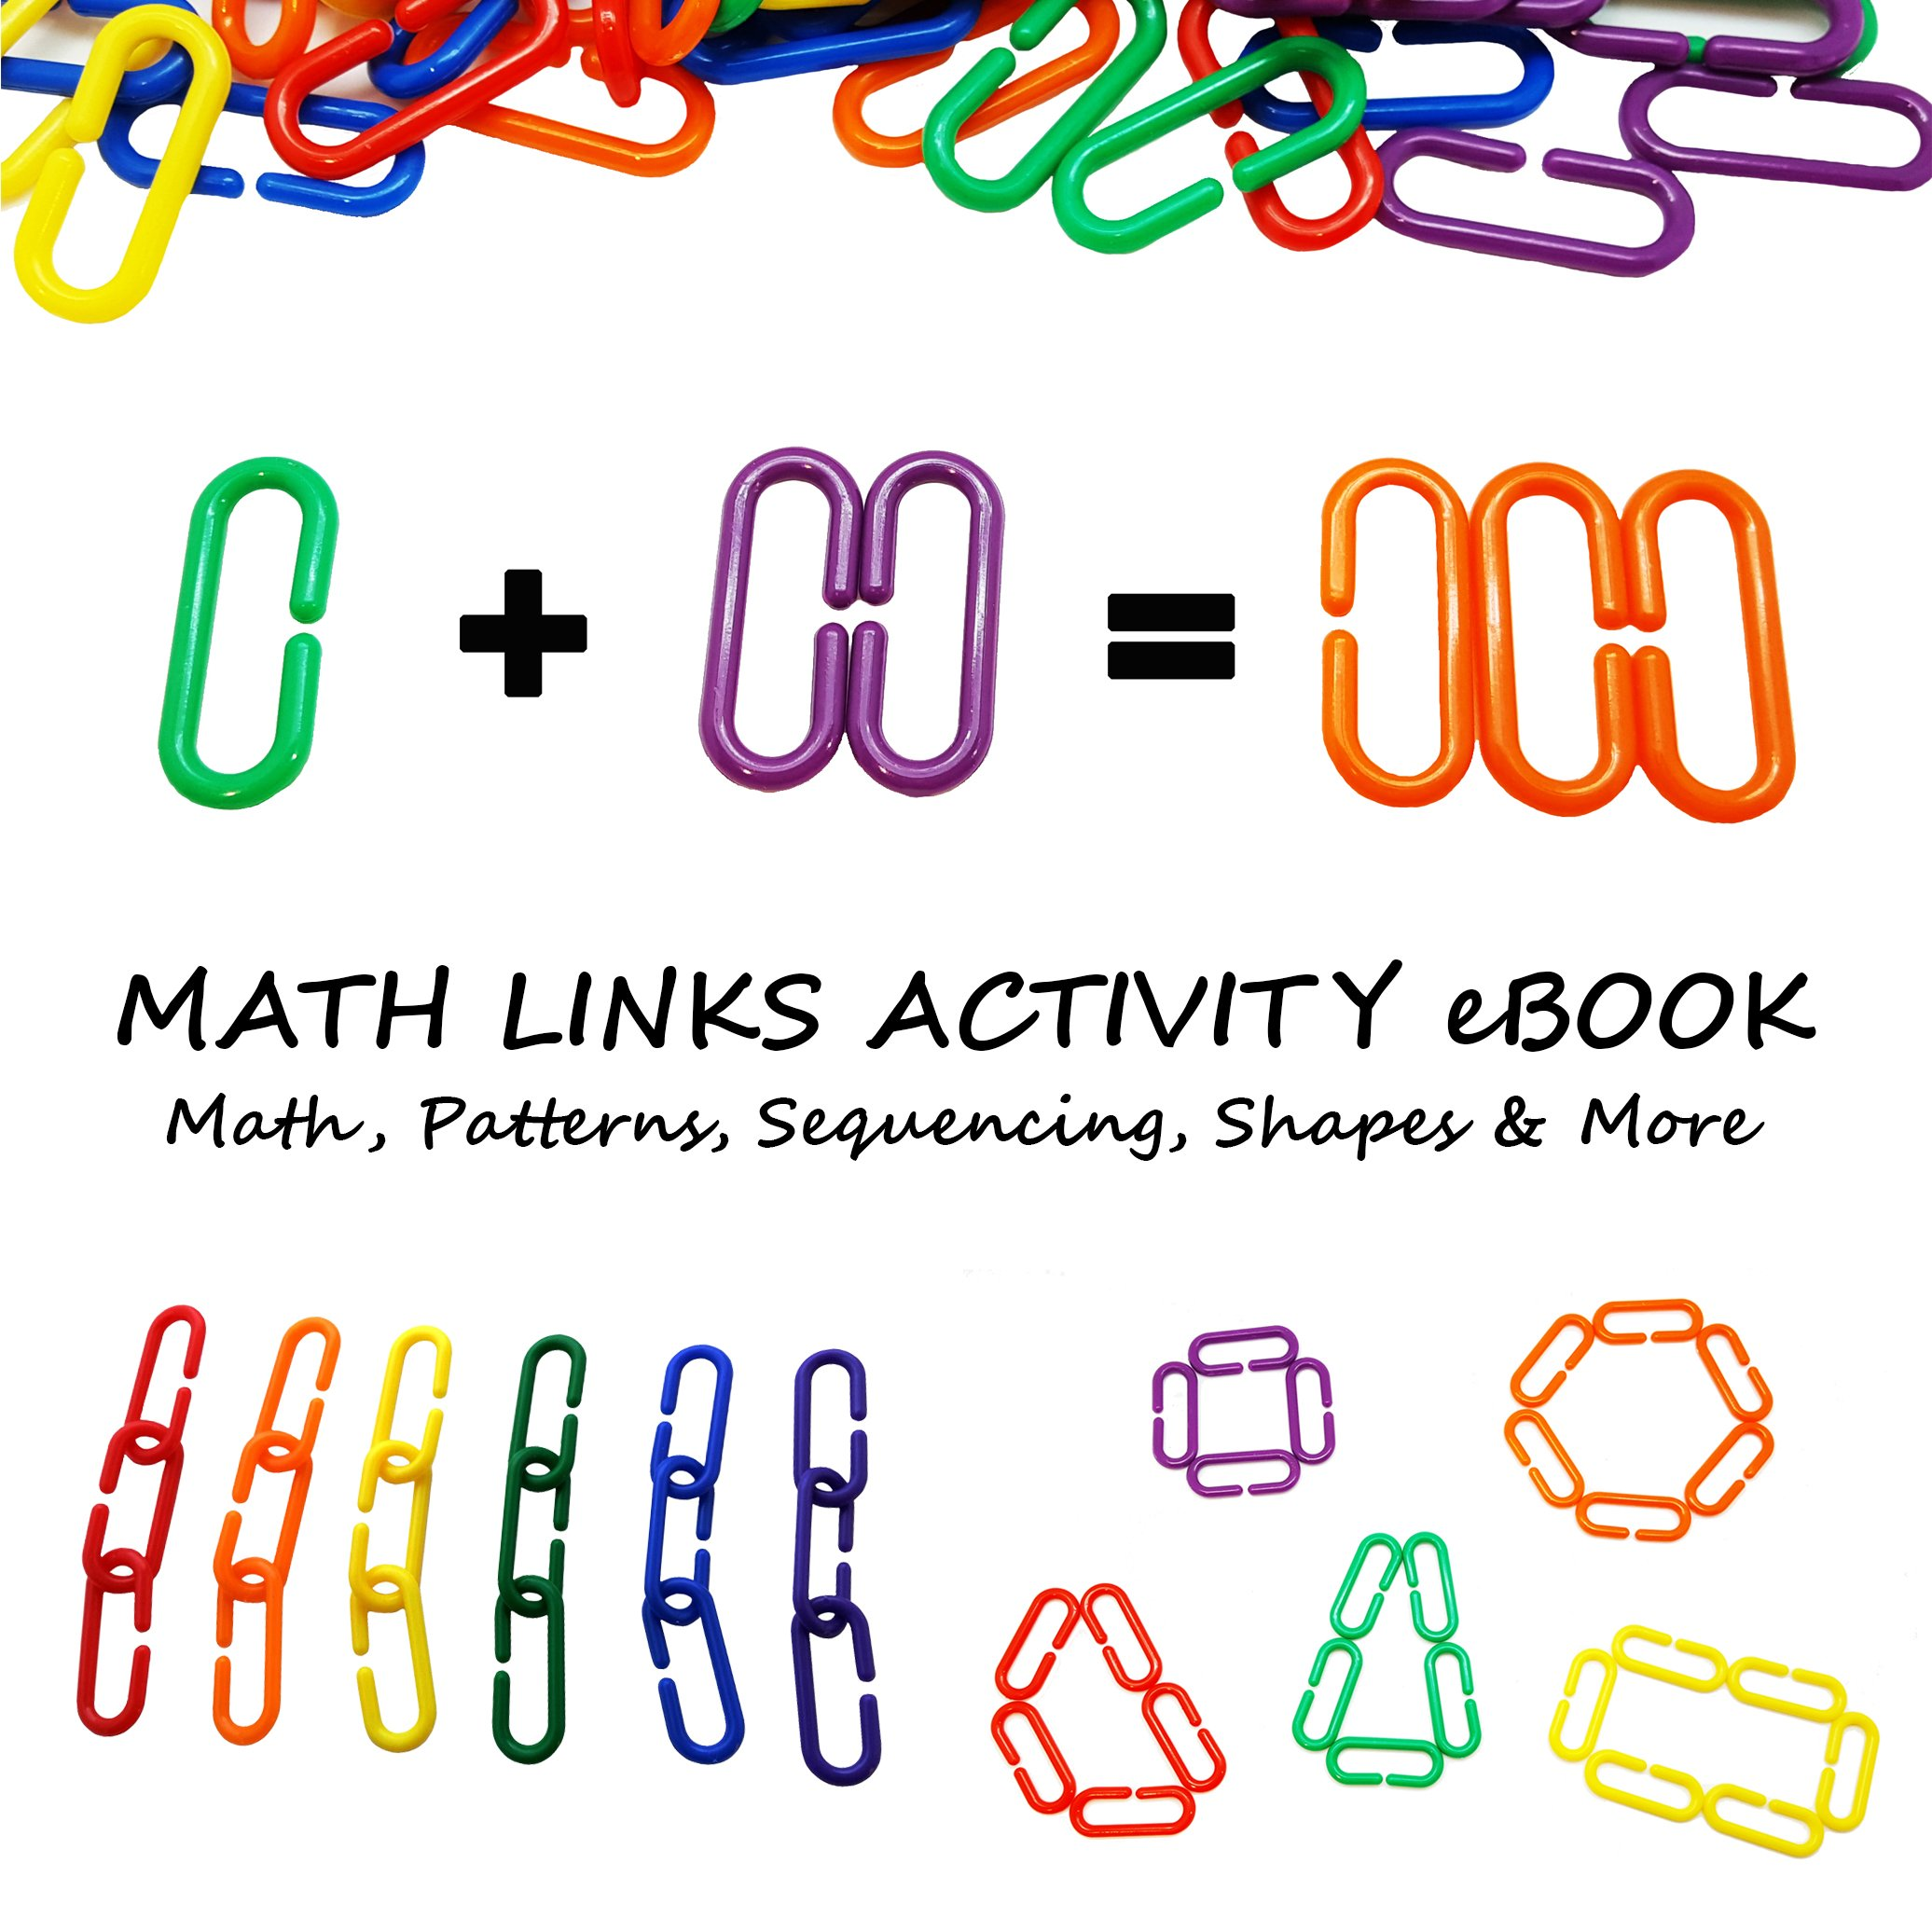 Skoolzy Linking Math Manipulatives Learning Toys - 120 Rainbow Math Links Counters with Tote & Preschool Learning Activities eBook - Kids Counting Toys Kindergarten Fine Motor Skills with Tote by Skoolzy (Image #7)